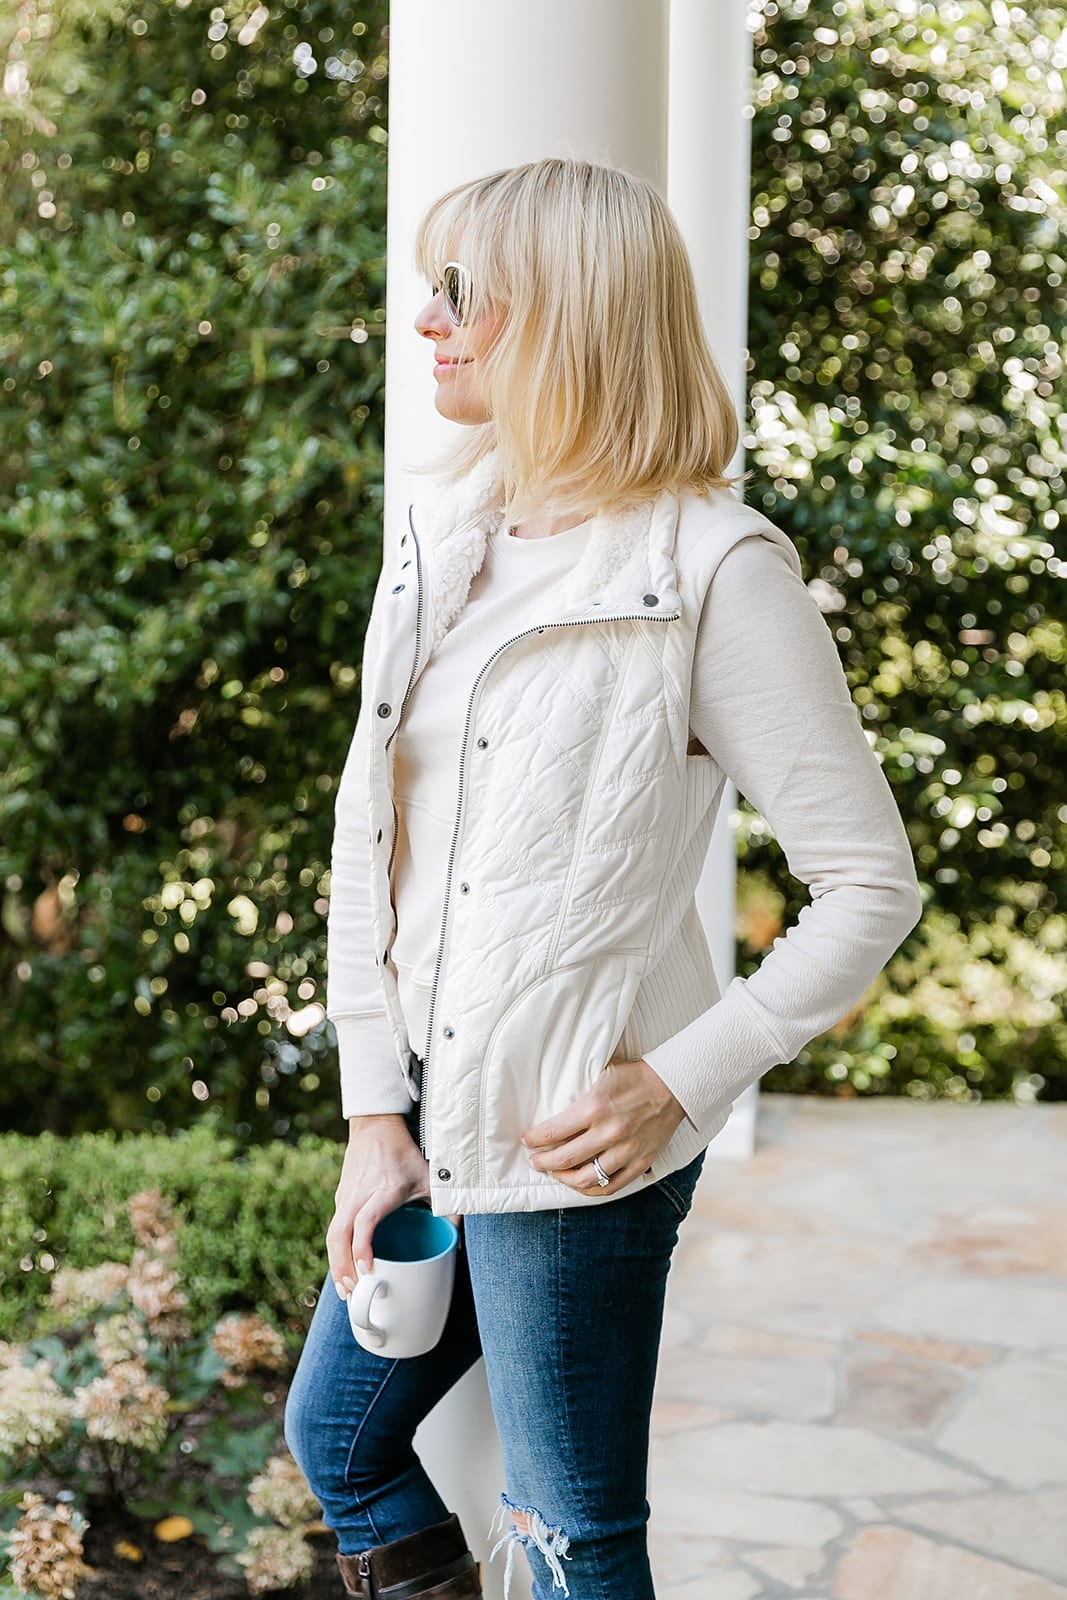 Vest and Sweatshirt Outfit in ivory and jeans.